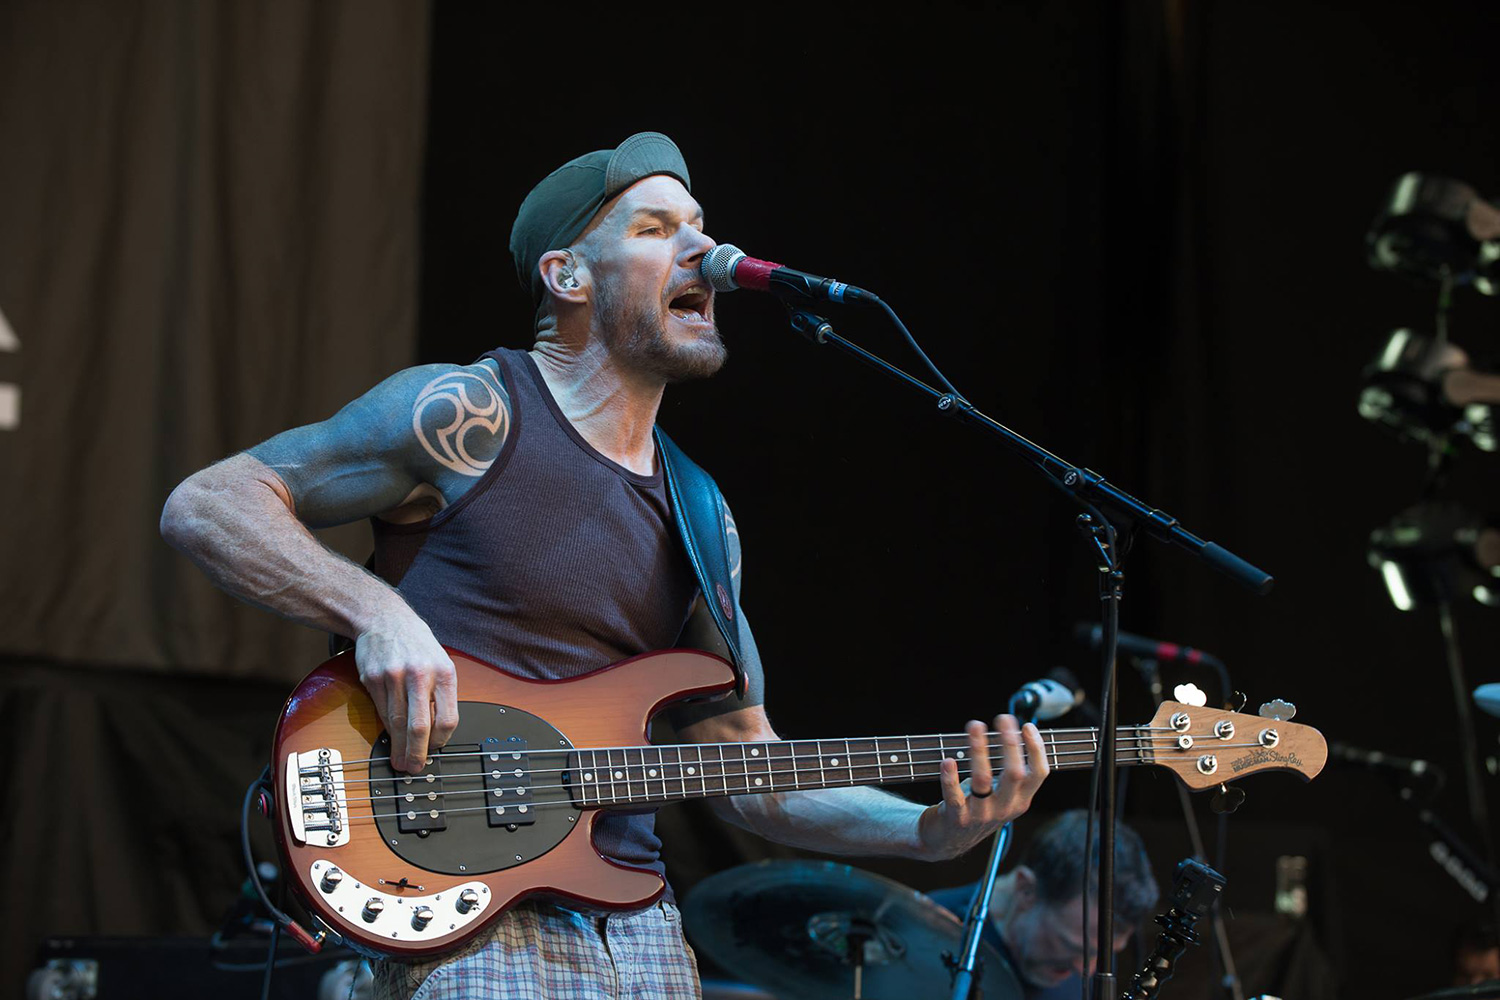 Rage Against The Machine Bassist Tom Commerford Picks Up